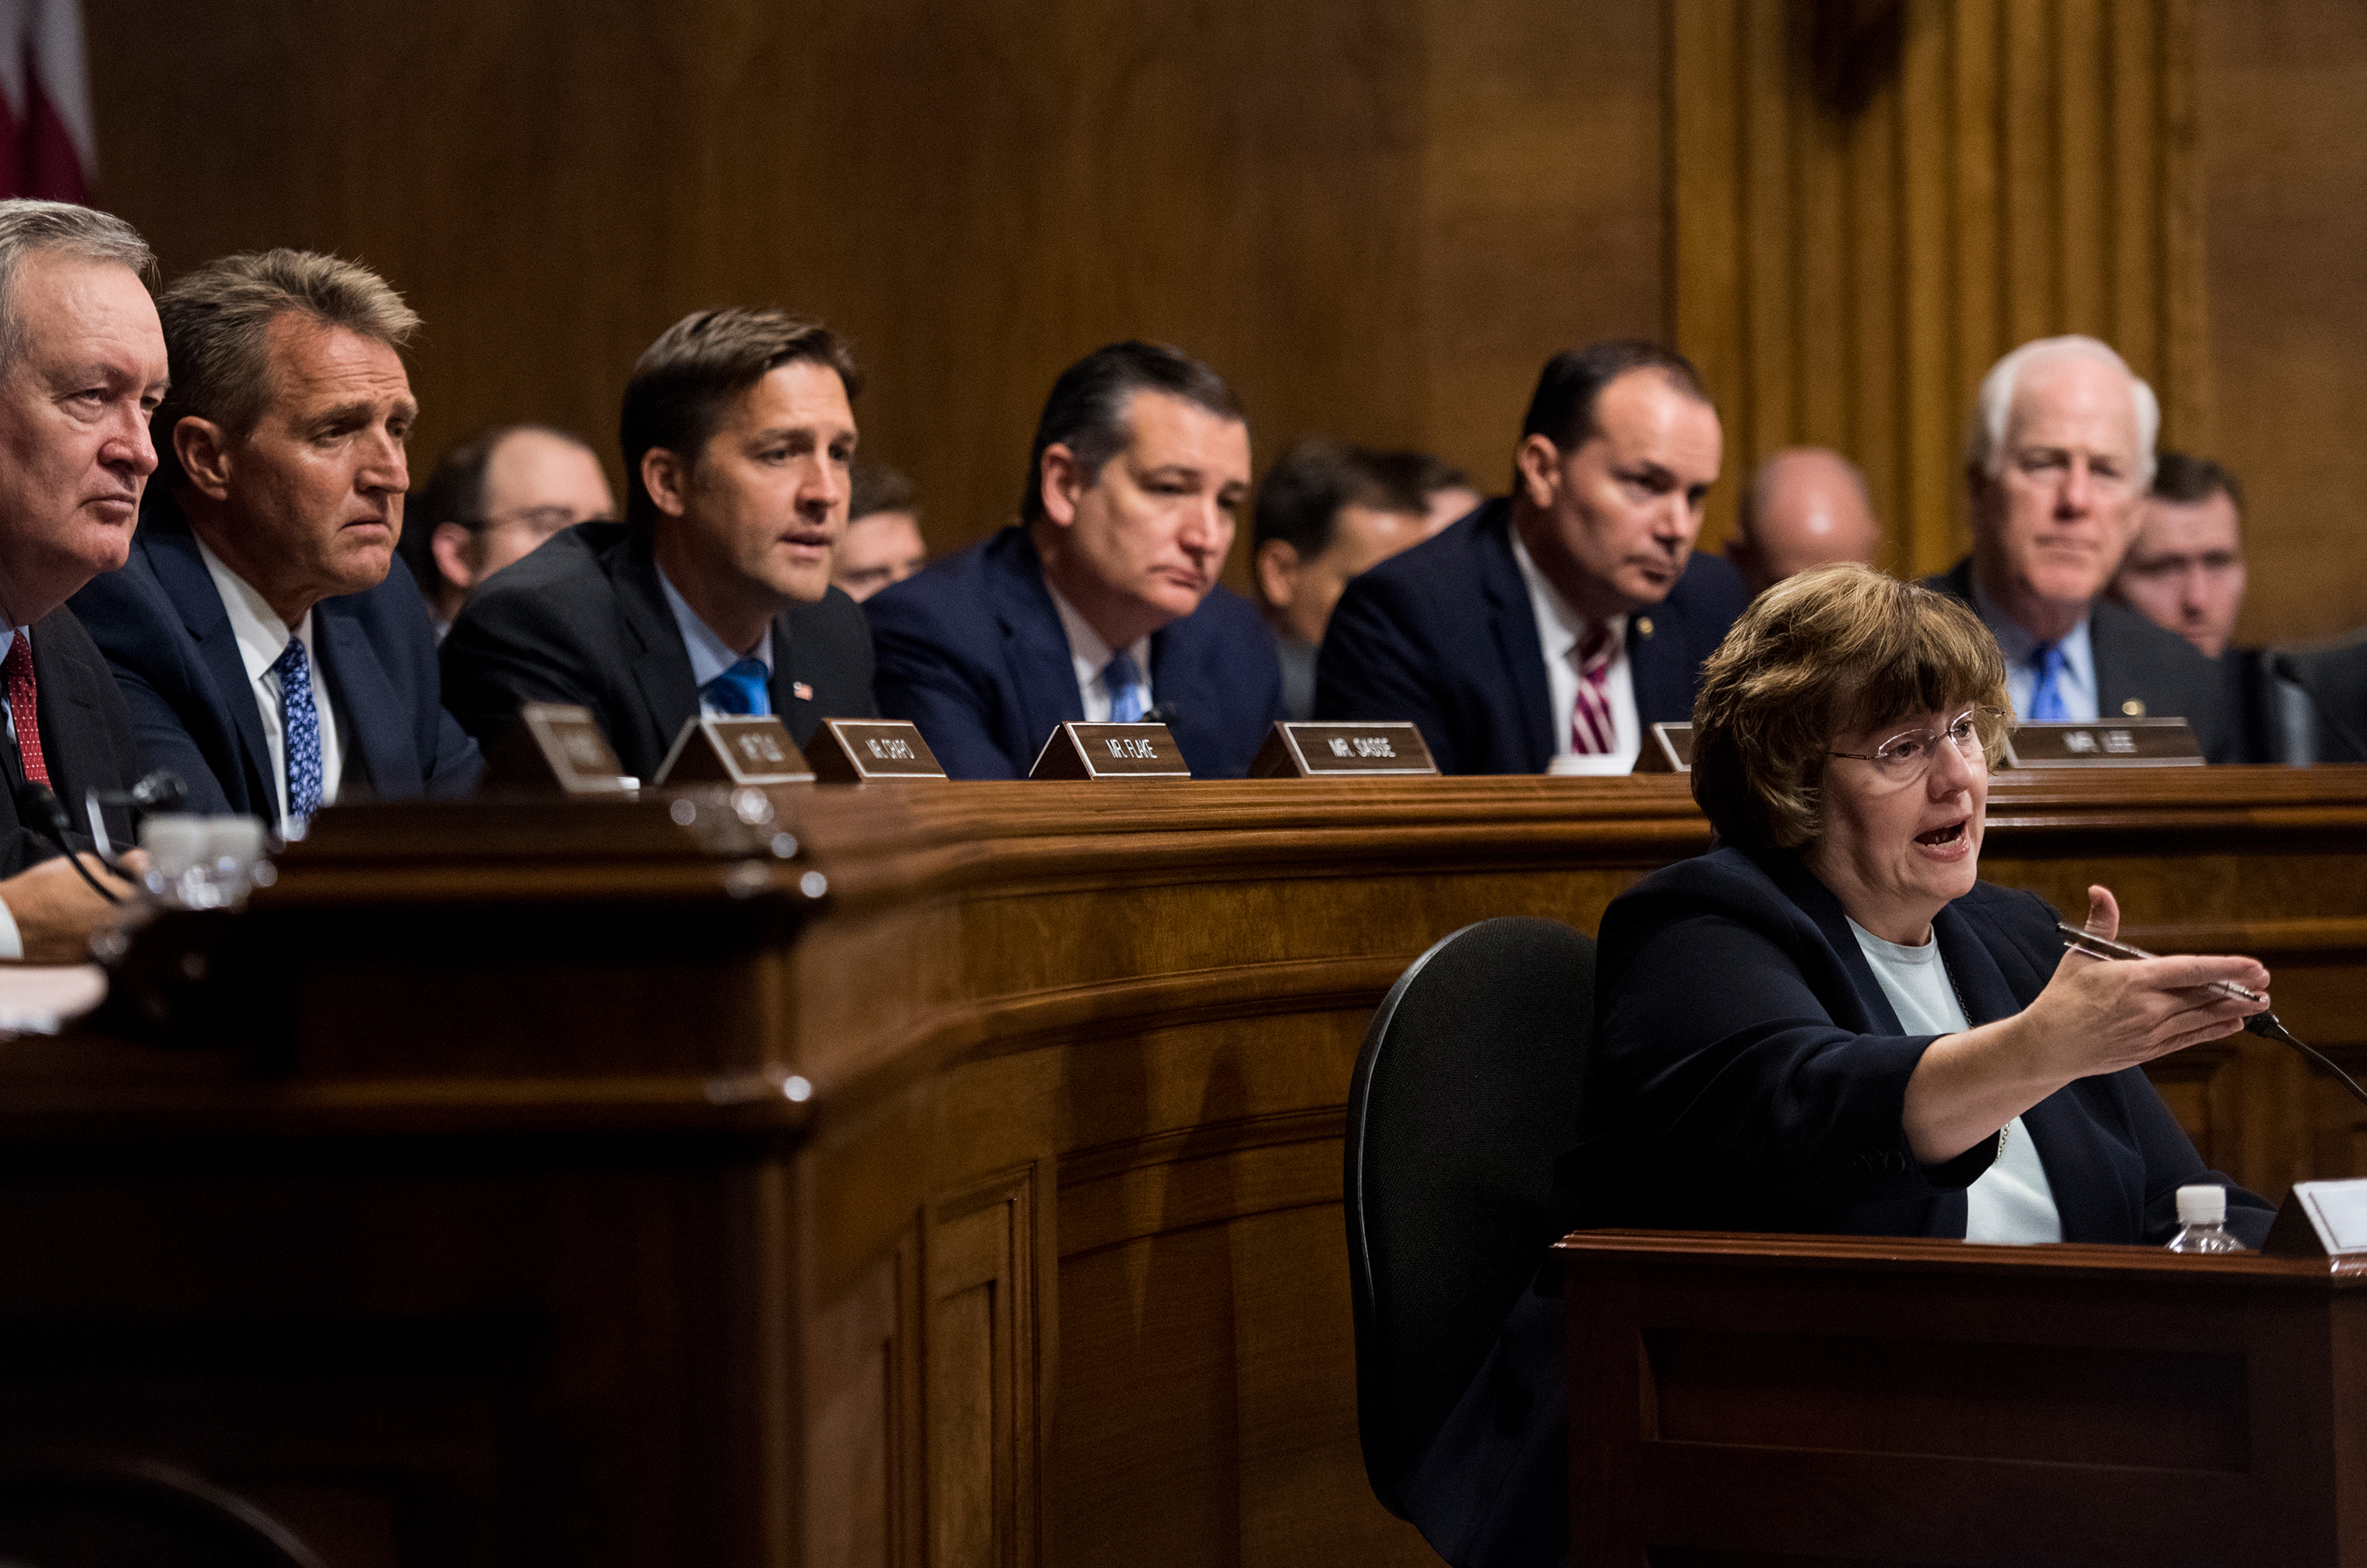 Rachel Mitchell, counsel for Senate Judiciary Committee Republicans, questions Dr. Christine Blasey Ford as Senators listen during the hearing on Sept. 27. From left, Sens. Mike Crapo, R-Idaho, Jeff Flake, R-Ariz., Ben Sasse, R-Neb., Ted Cruz, R-Texas, Mike Lee, R-Utah., and John Cornyn, R-Texas.